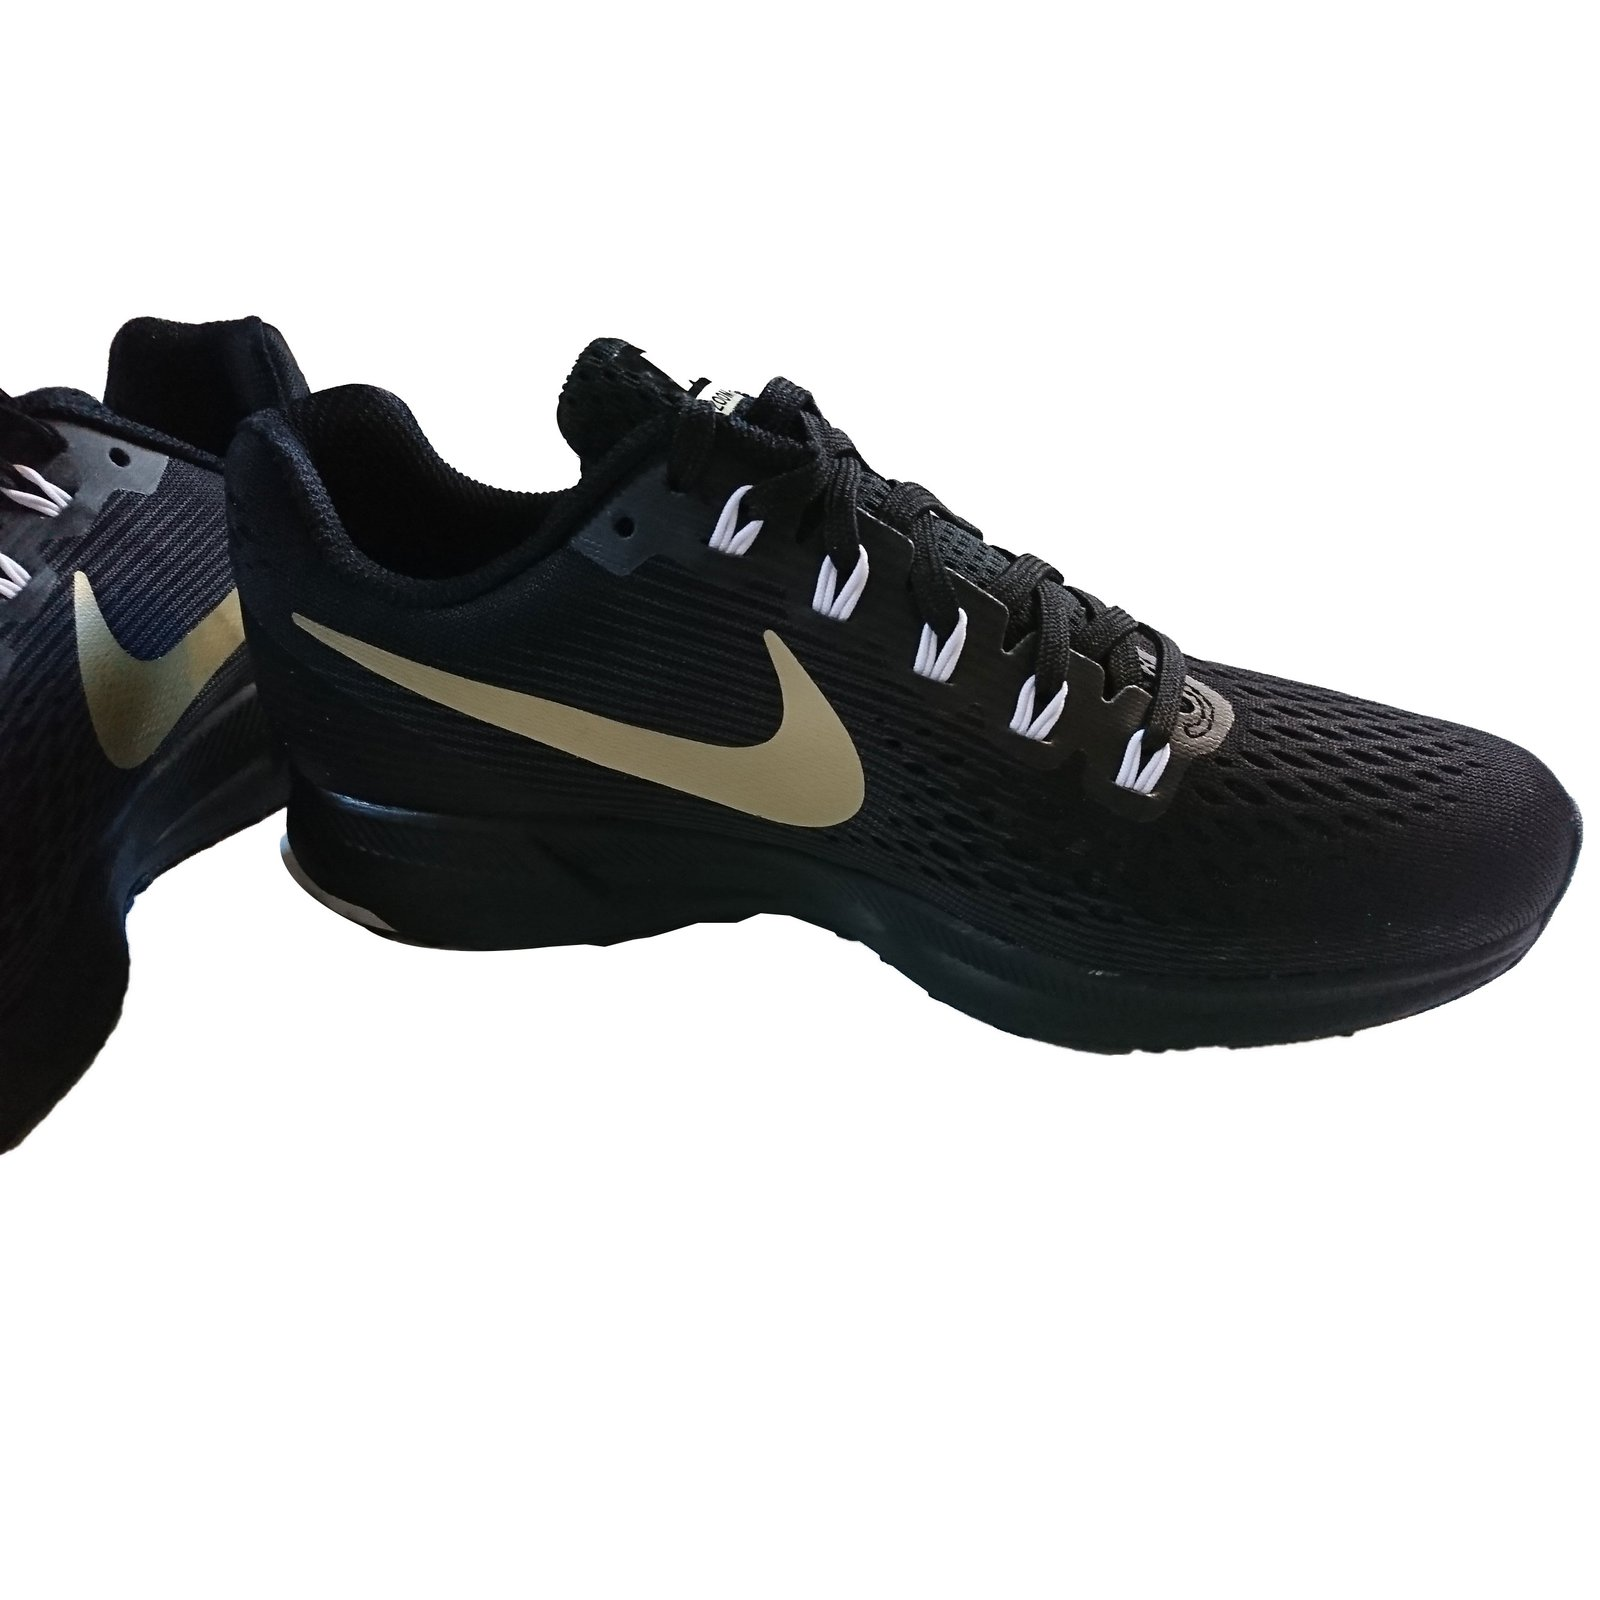 on sale ce02f 61a8a Baskets Nike NIKE AIR ZOOM PEGASUS 34 MEDAL PACK Autre Noir ref.56034 -  Joli Closet